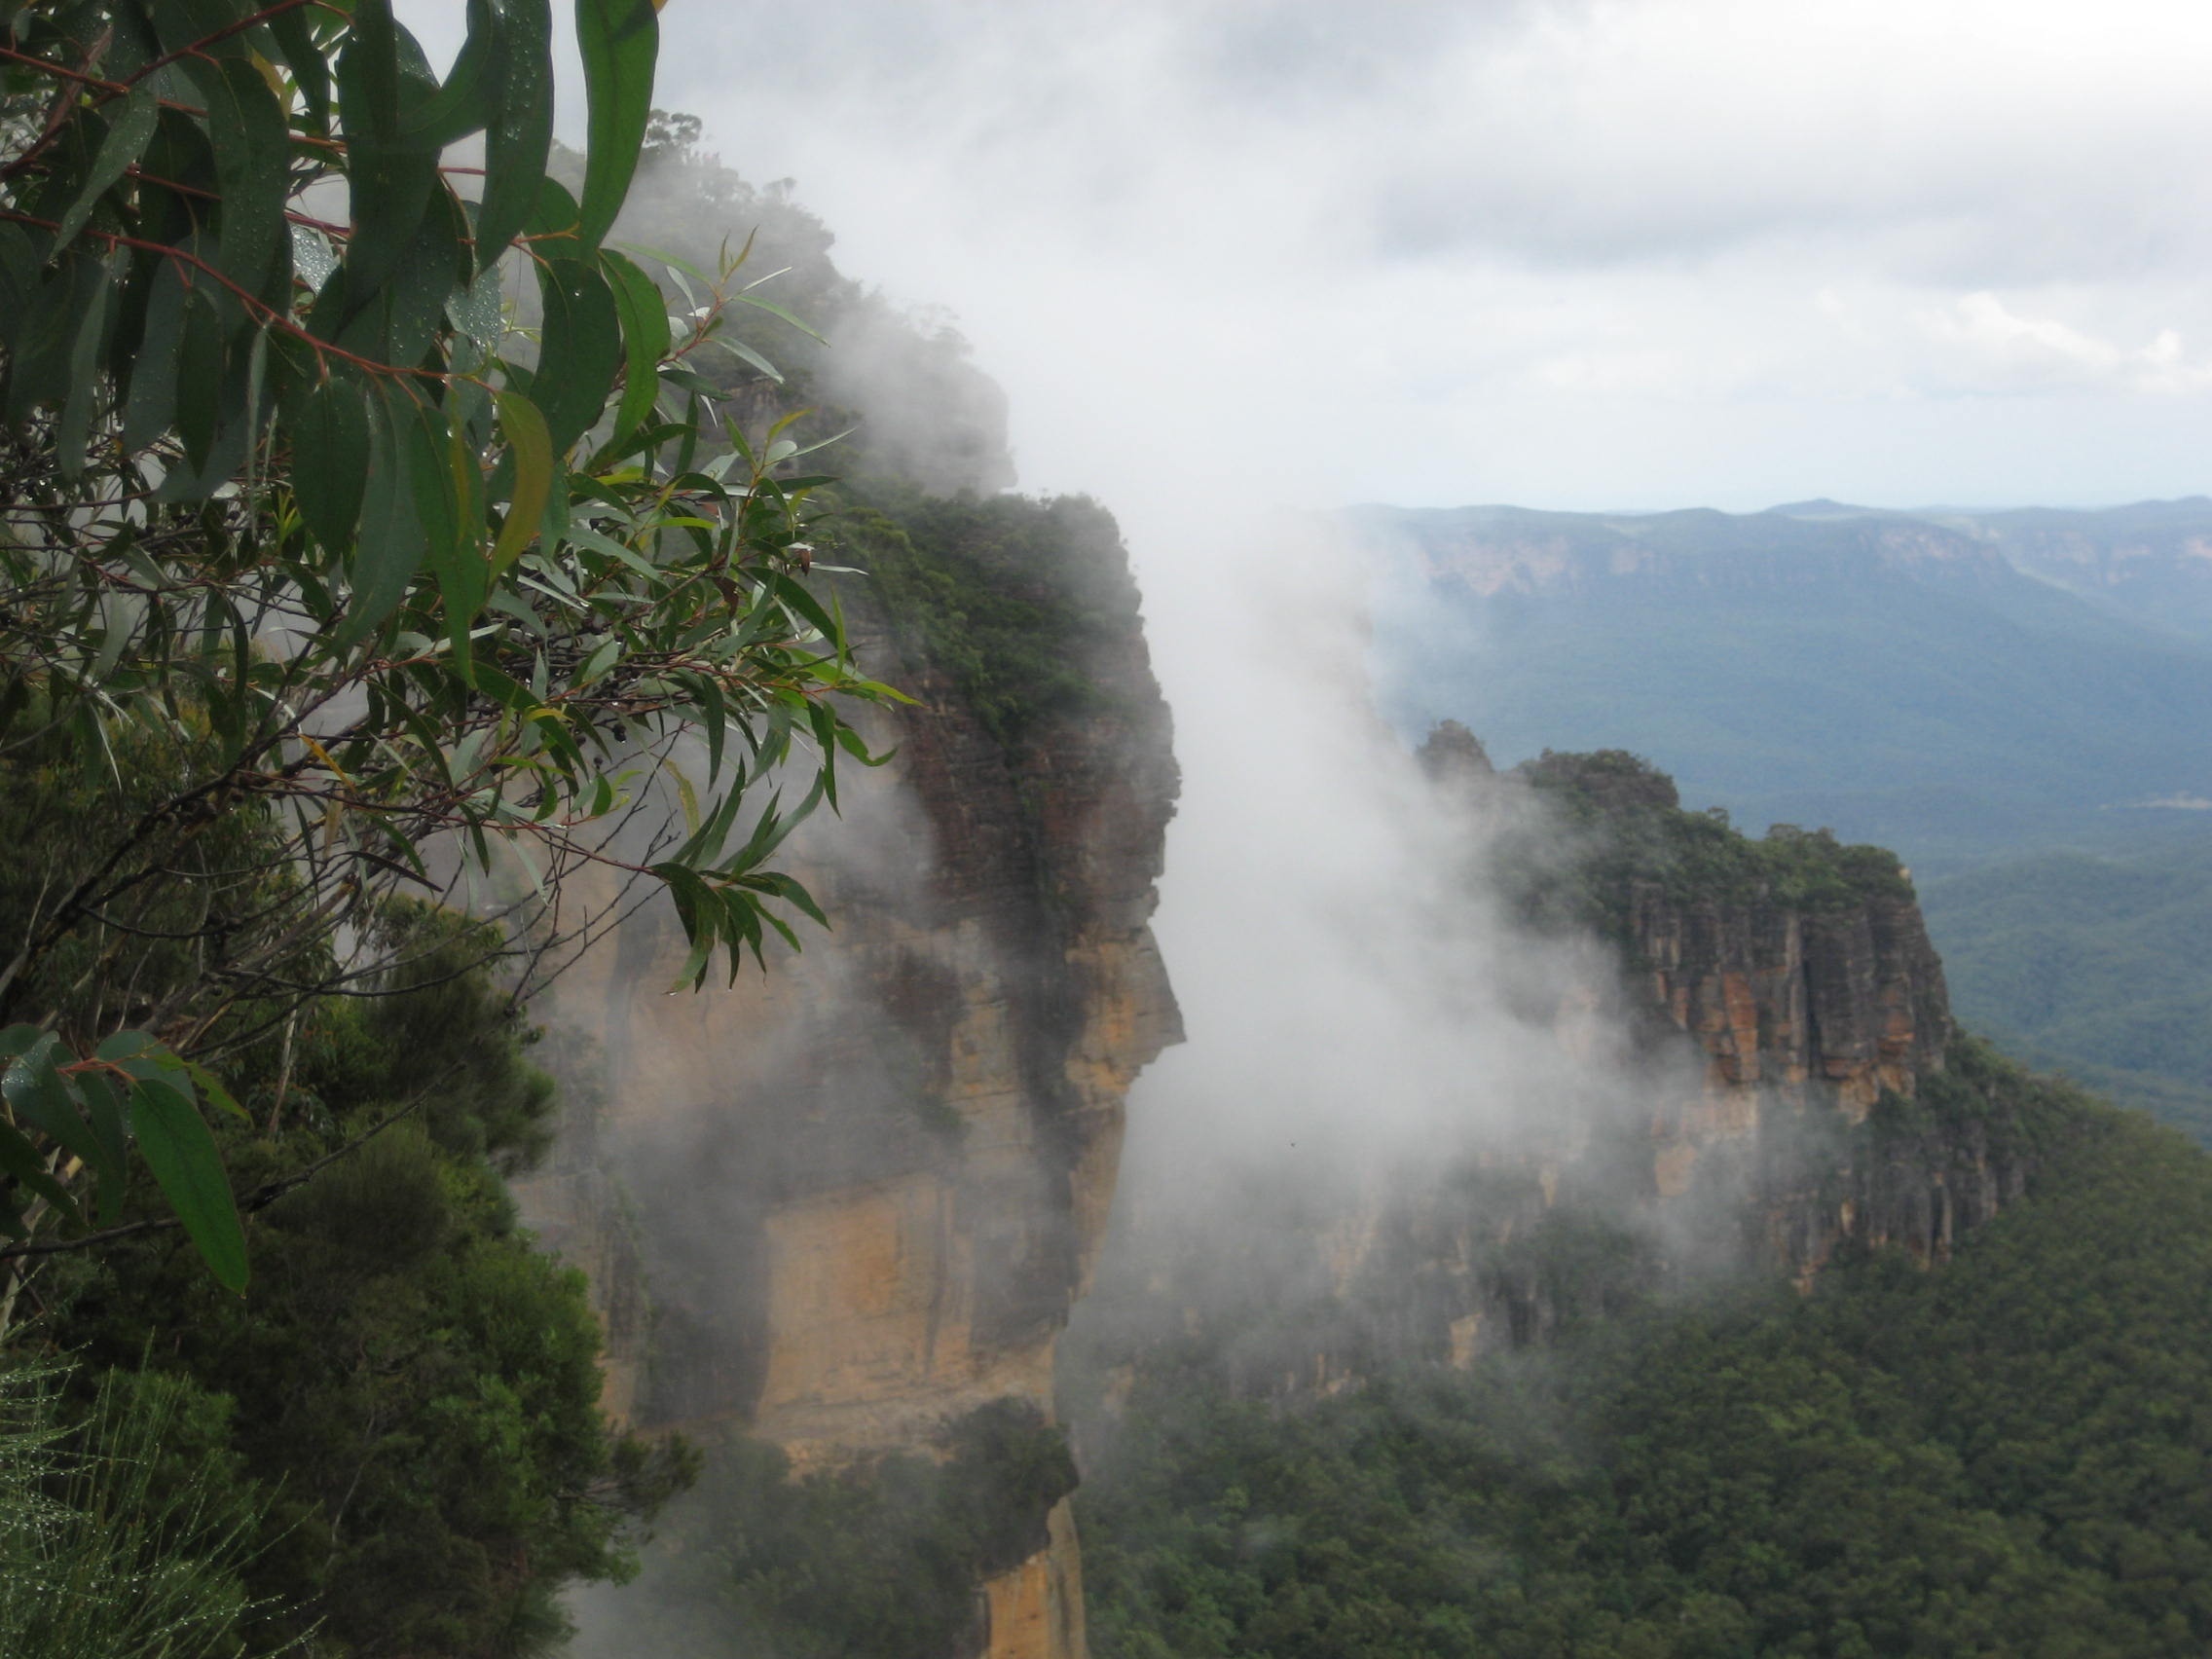 Affordable Healing Meditation Retreats in the Blue Mountains for both Beginners and Experienced.